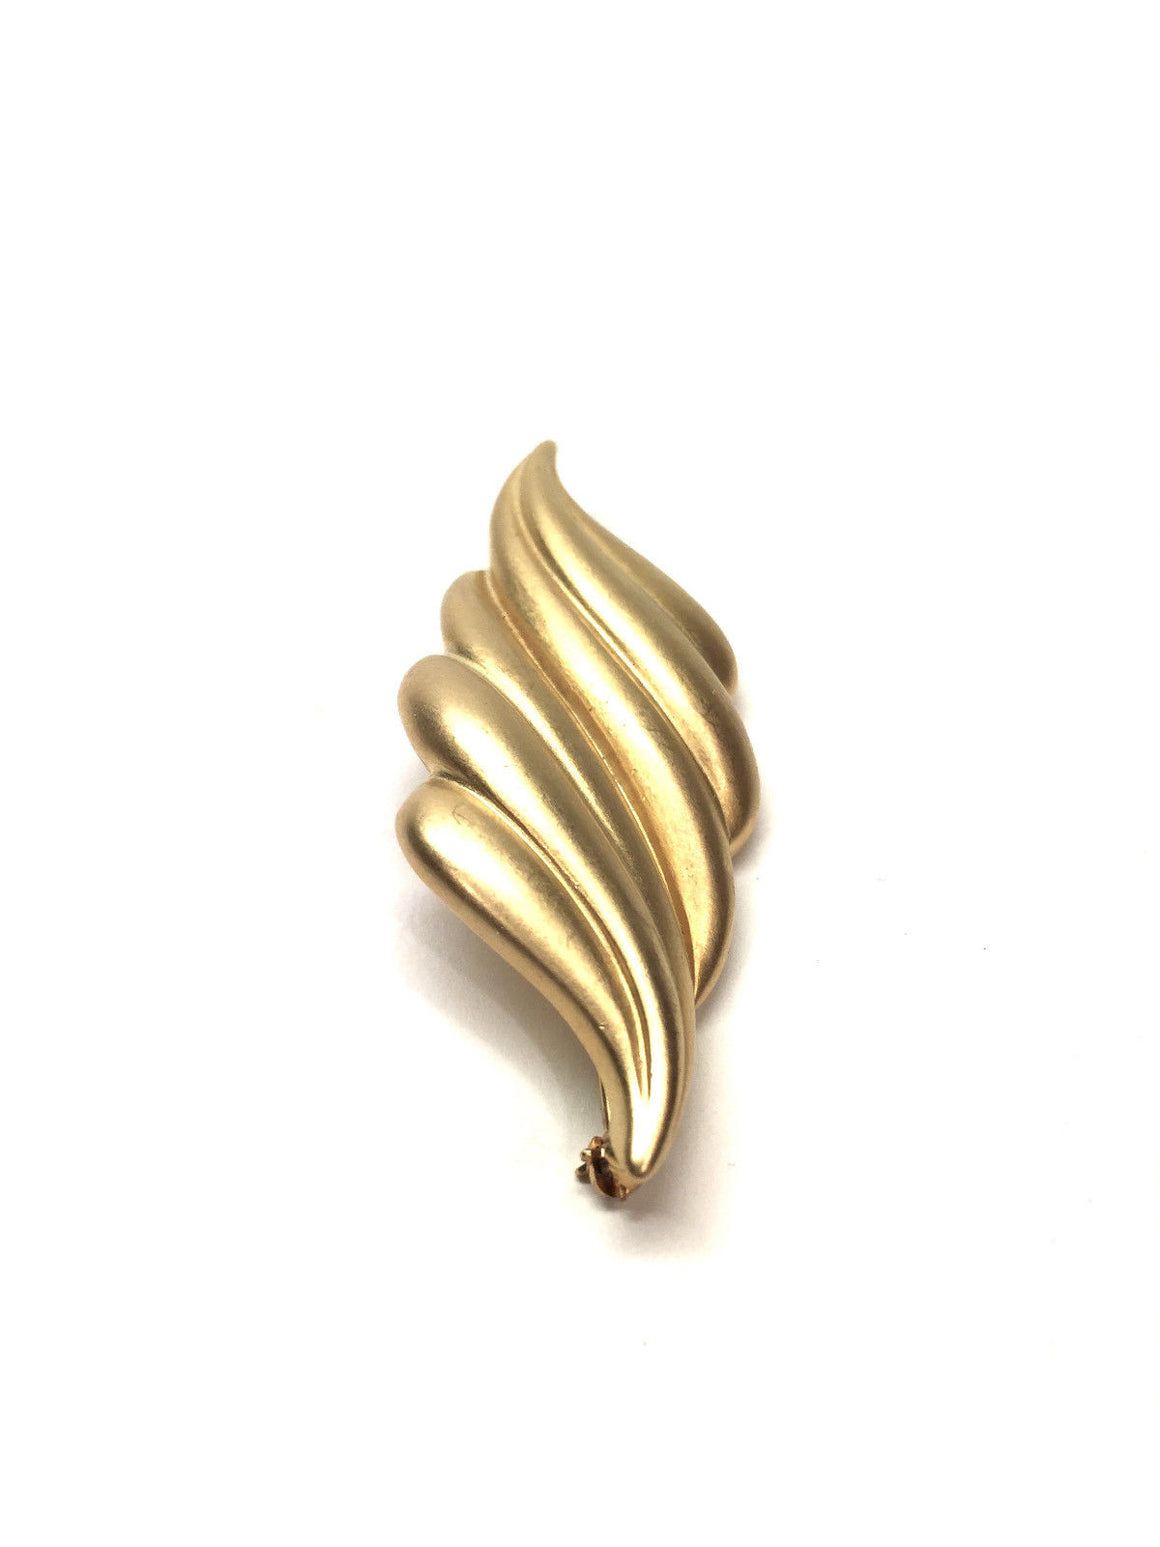 bisbiz.com ERWIN PEARL Opaque Gold-Tone Swirled Double Leaf Pin/Brooch - Bis Luxury Resale